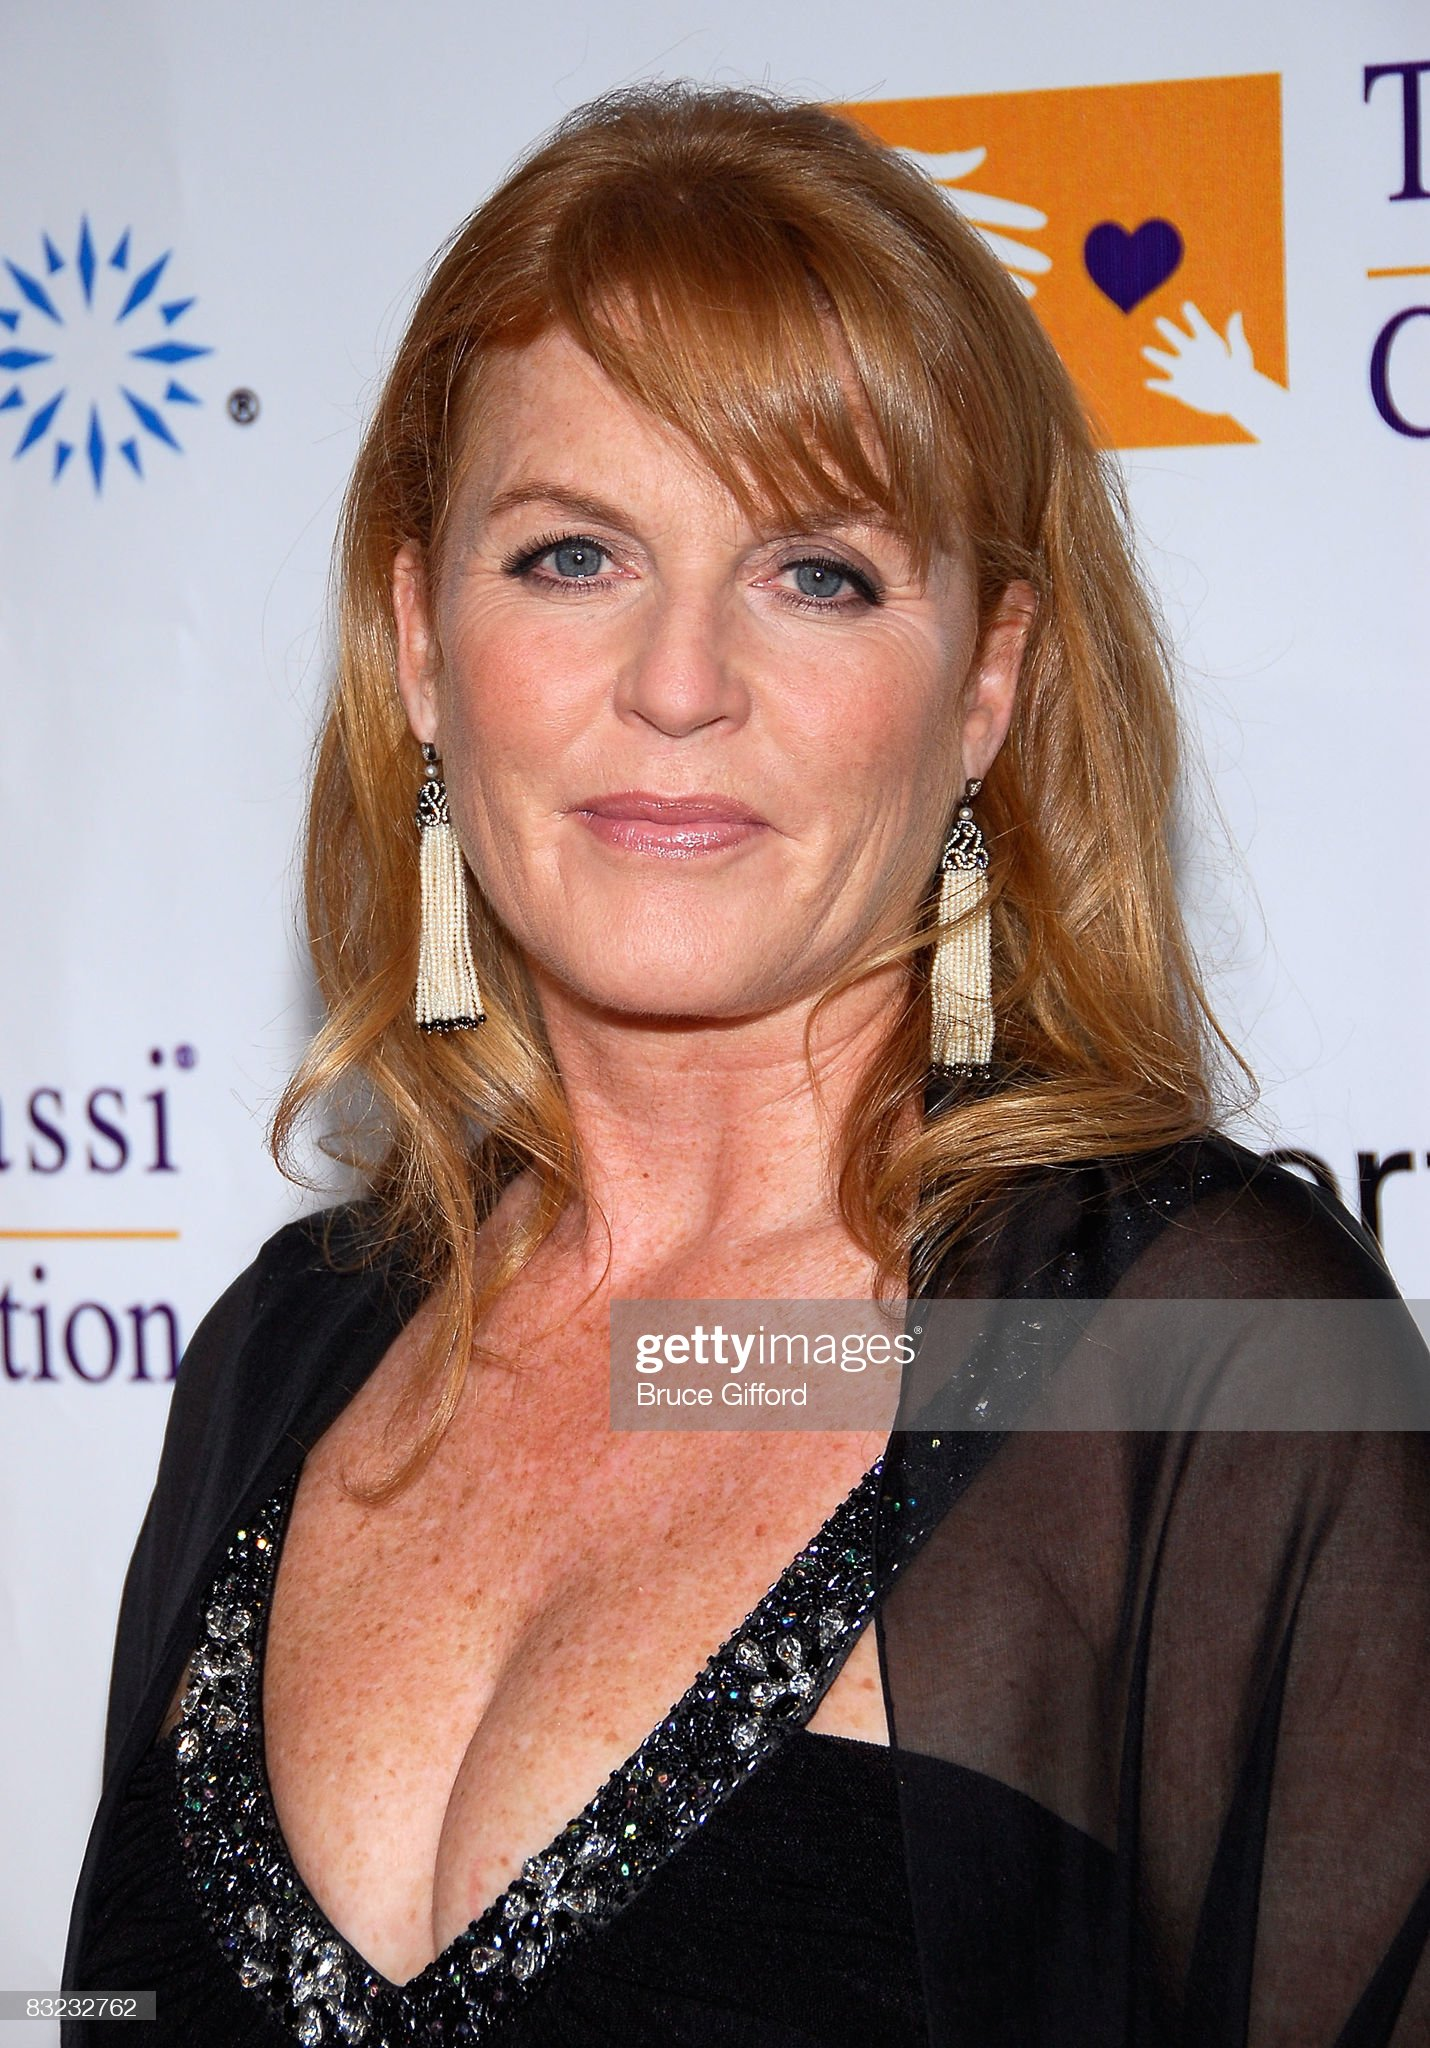 The Andre Agassi Charitable Foundation's 13th Annual Grand Slam for Chil : News Photo